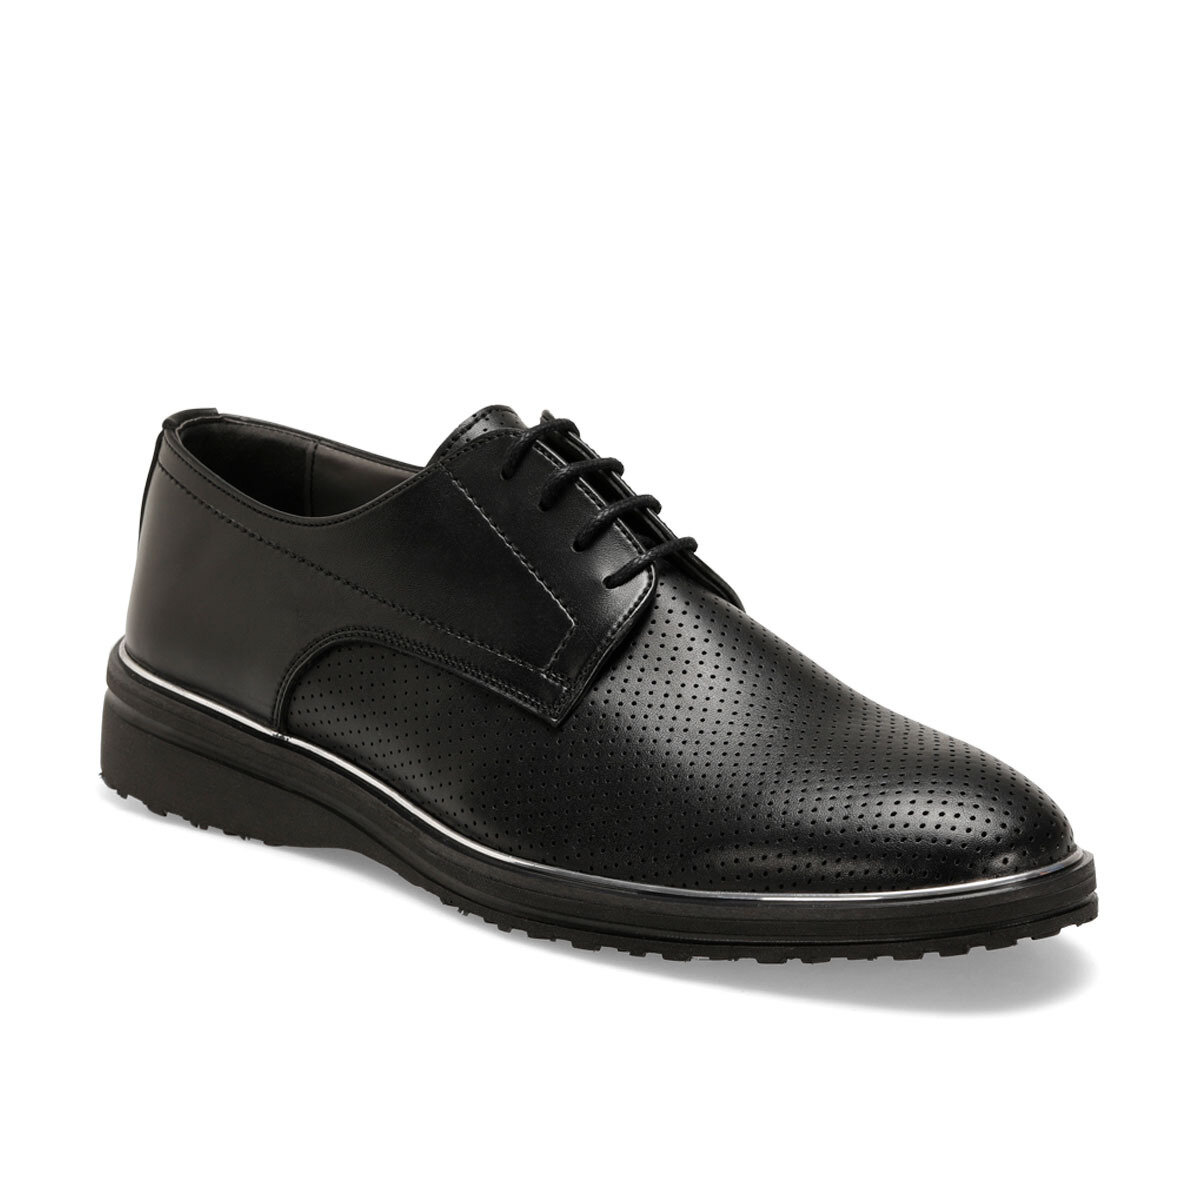 FLO 313-1 Black Men Dress Shoes-Styles